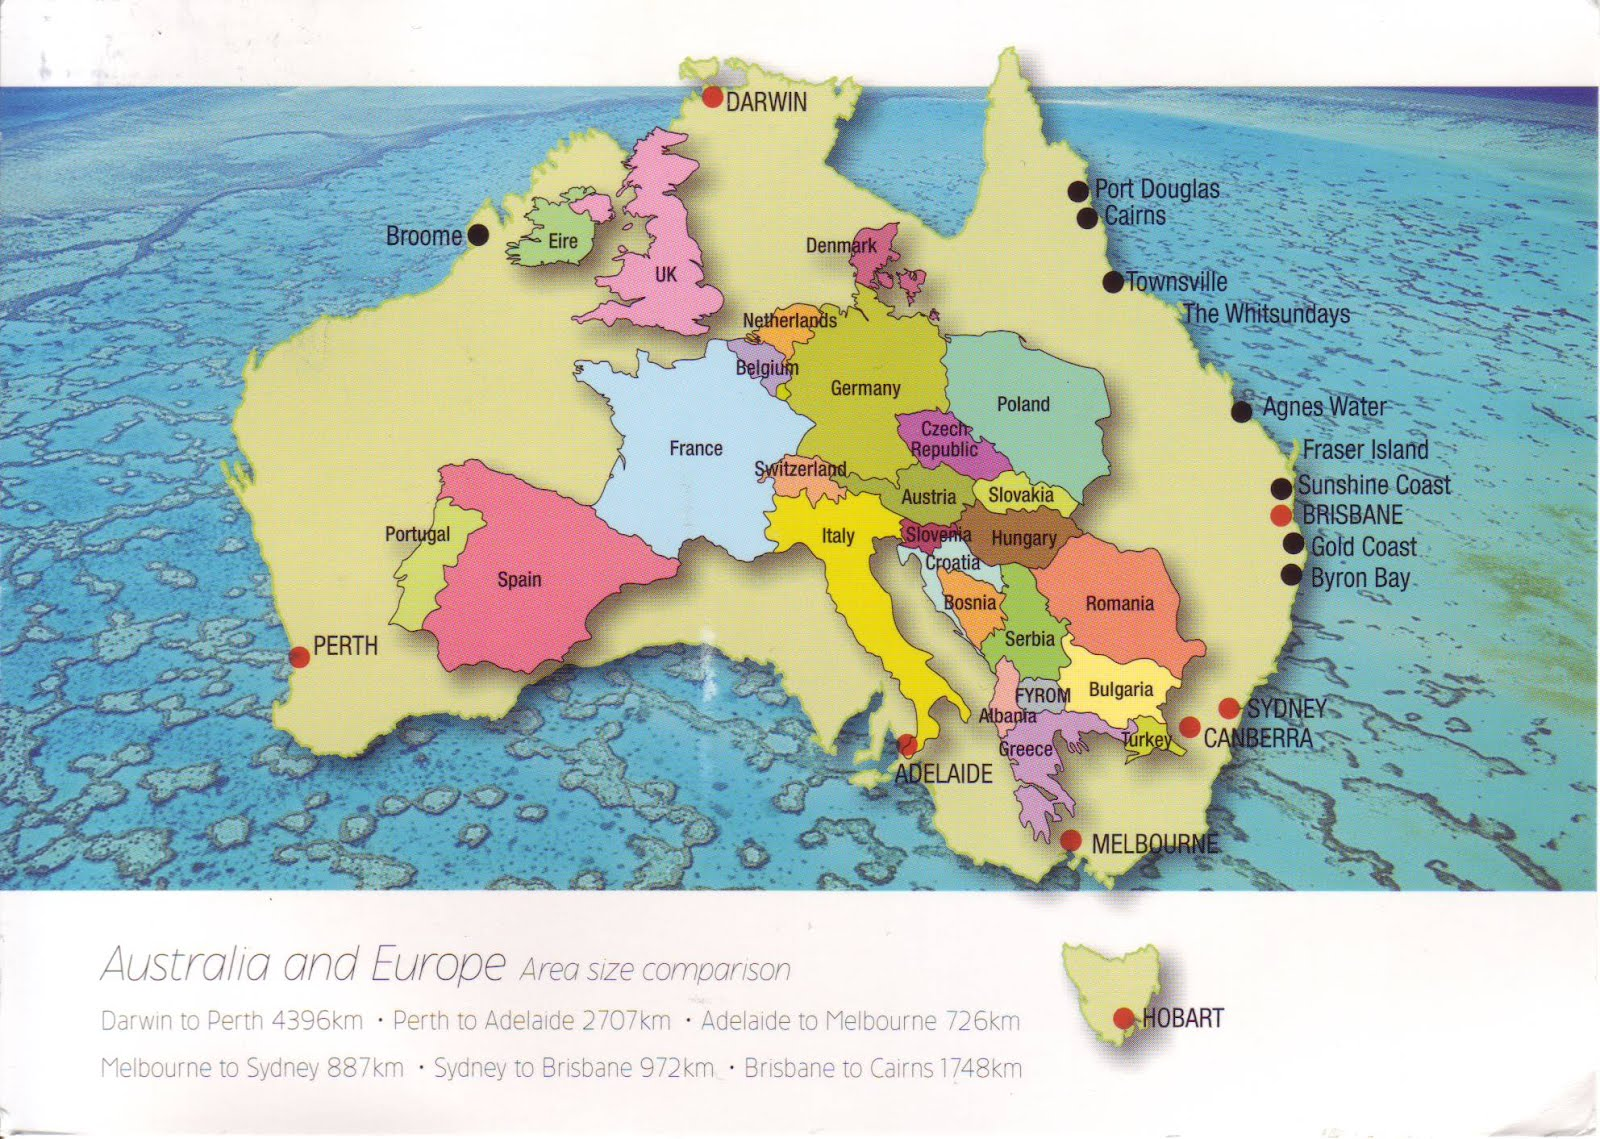 The world in postcards sabines blog australia map beautiful new mapcard with interesting facts of australia sent by rod eime in a private swap somehow australia always looks small on a world map but seeing gumiabroncs Gallery